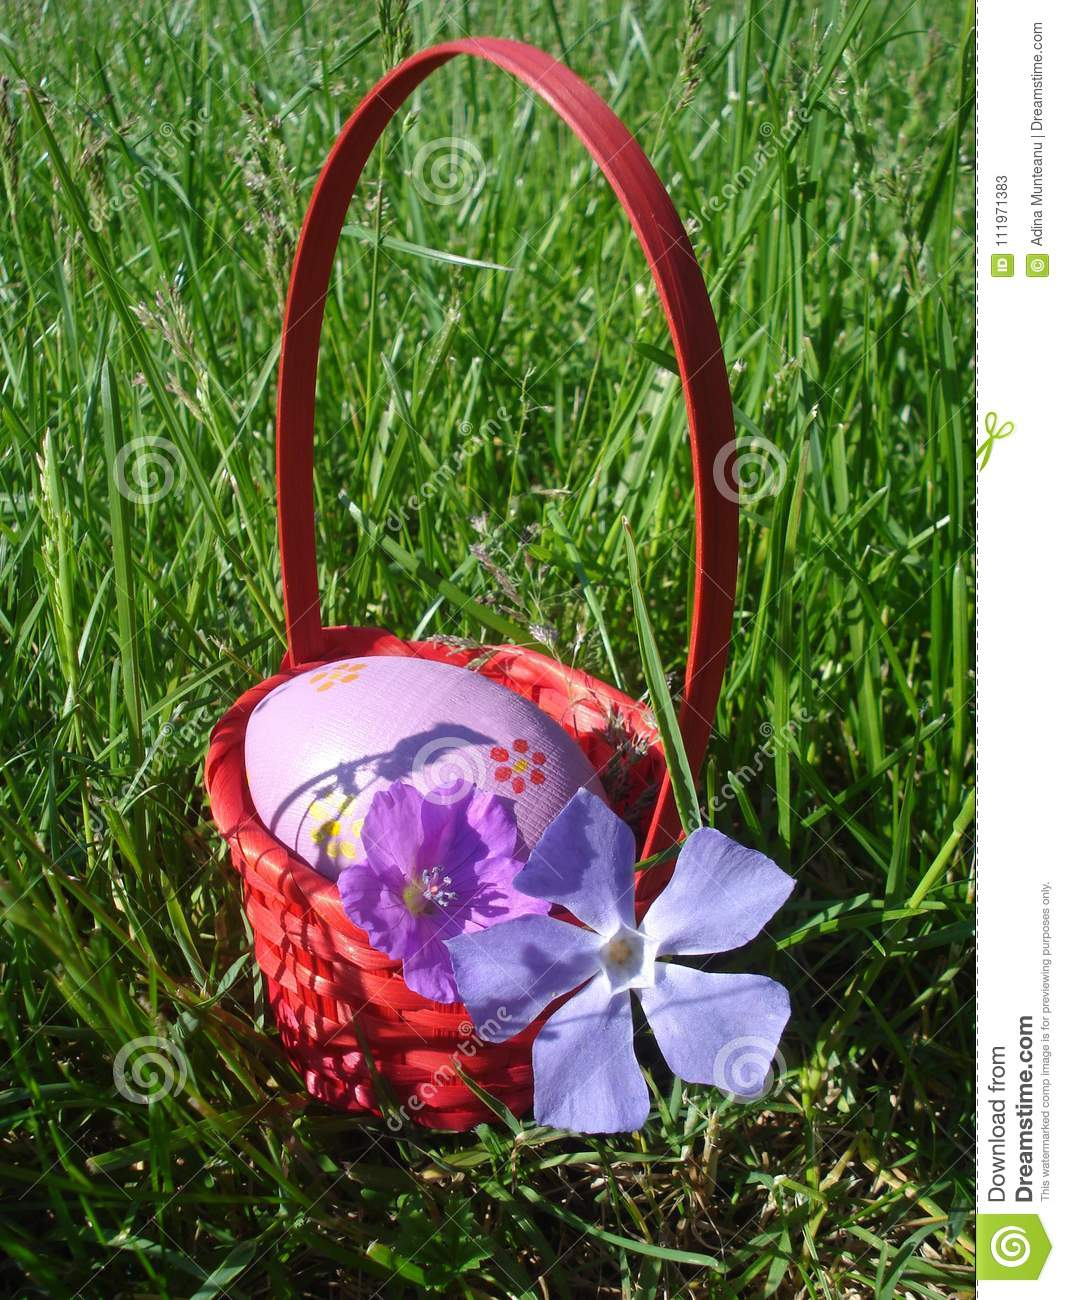 Violet Easter egg and violet spring flowers in red wicker basket